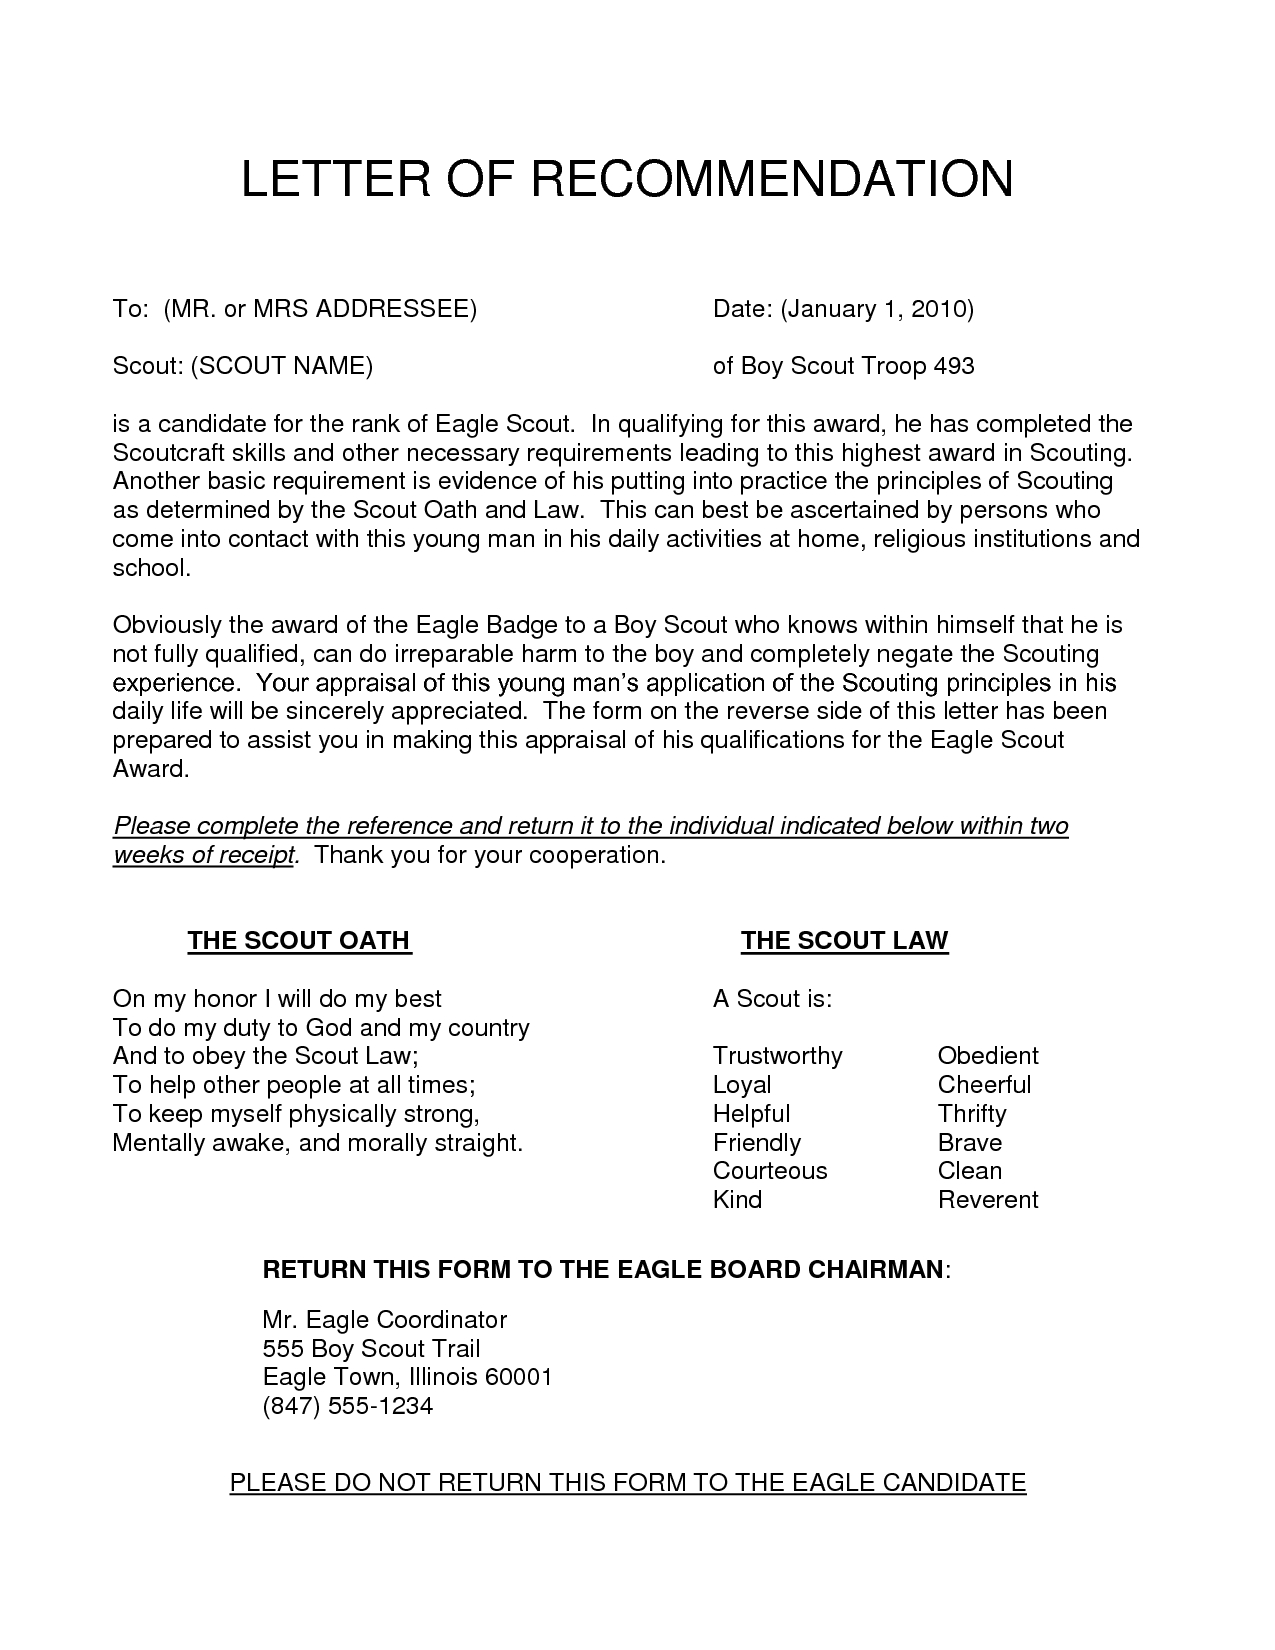 Eagle Scout Donation Letter Template - Content 2016 10 Eagle Scout